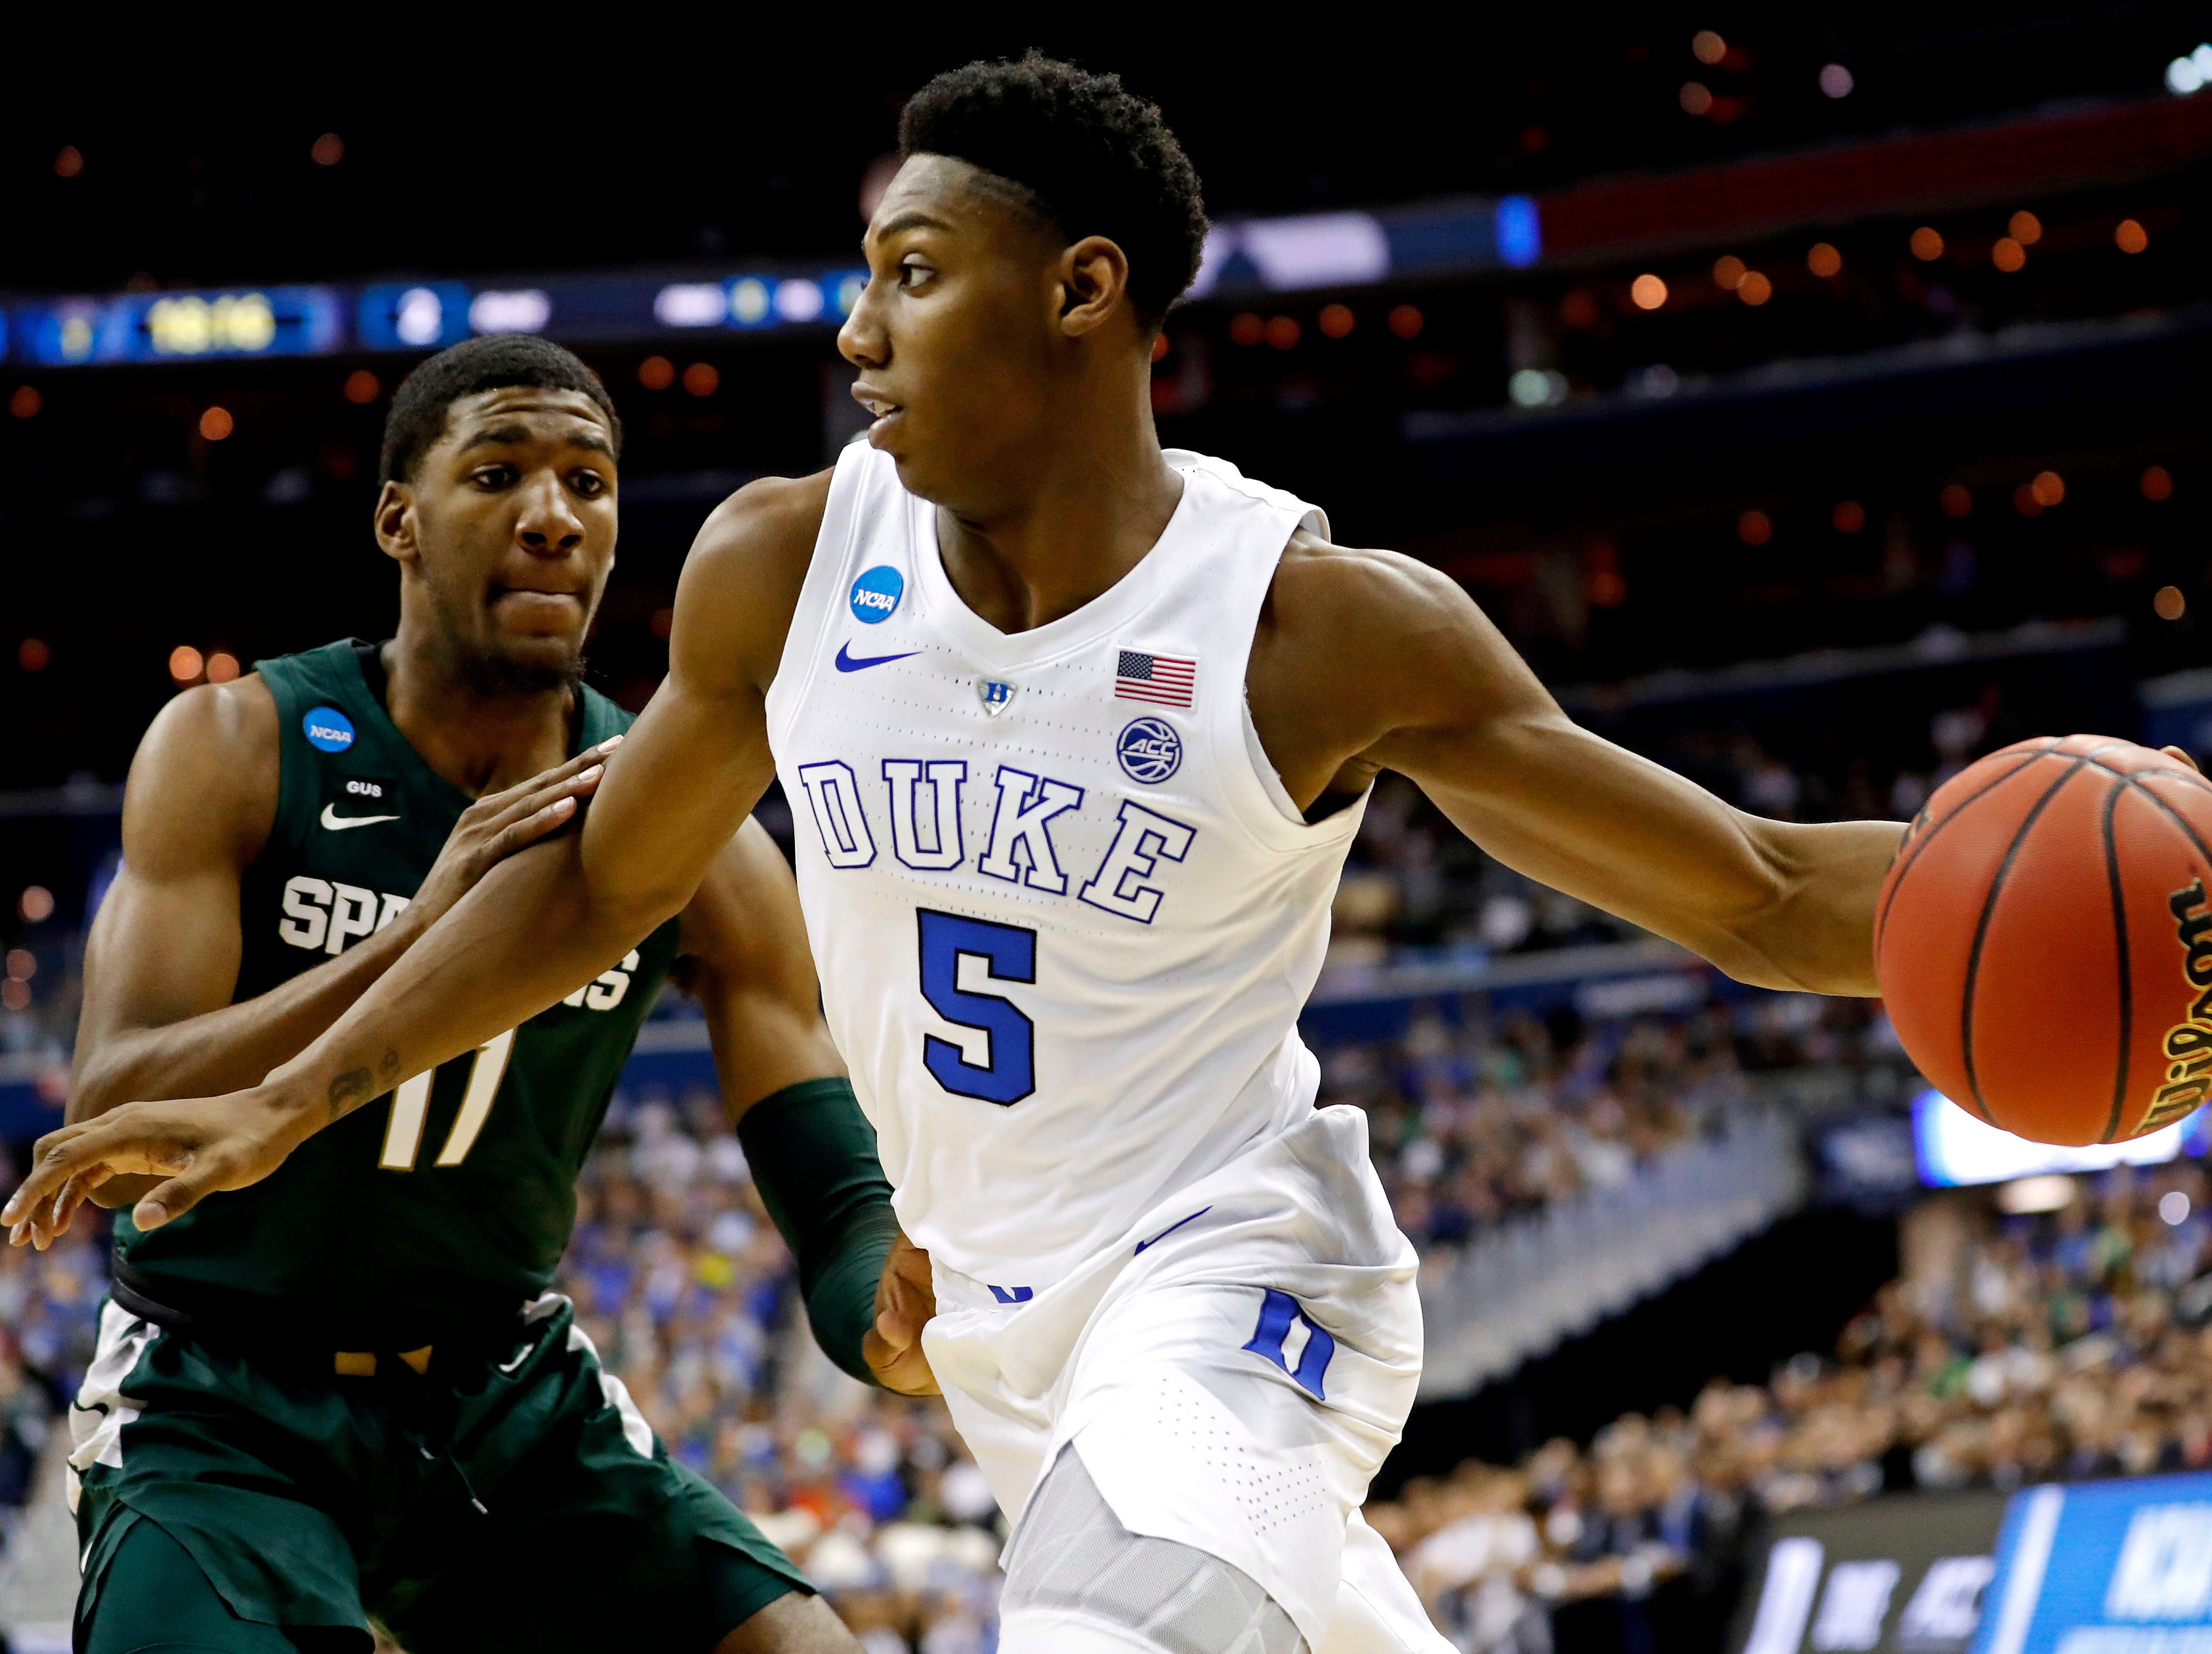 Duke Blue Devils forward RJ Barrett (5) drives to the basket against Michigan State Spartans forward Aaron Henry (11) during the first half in the championship game of the east regional of the 2019 NCAA Tournament at Capital One Arena.